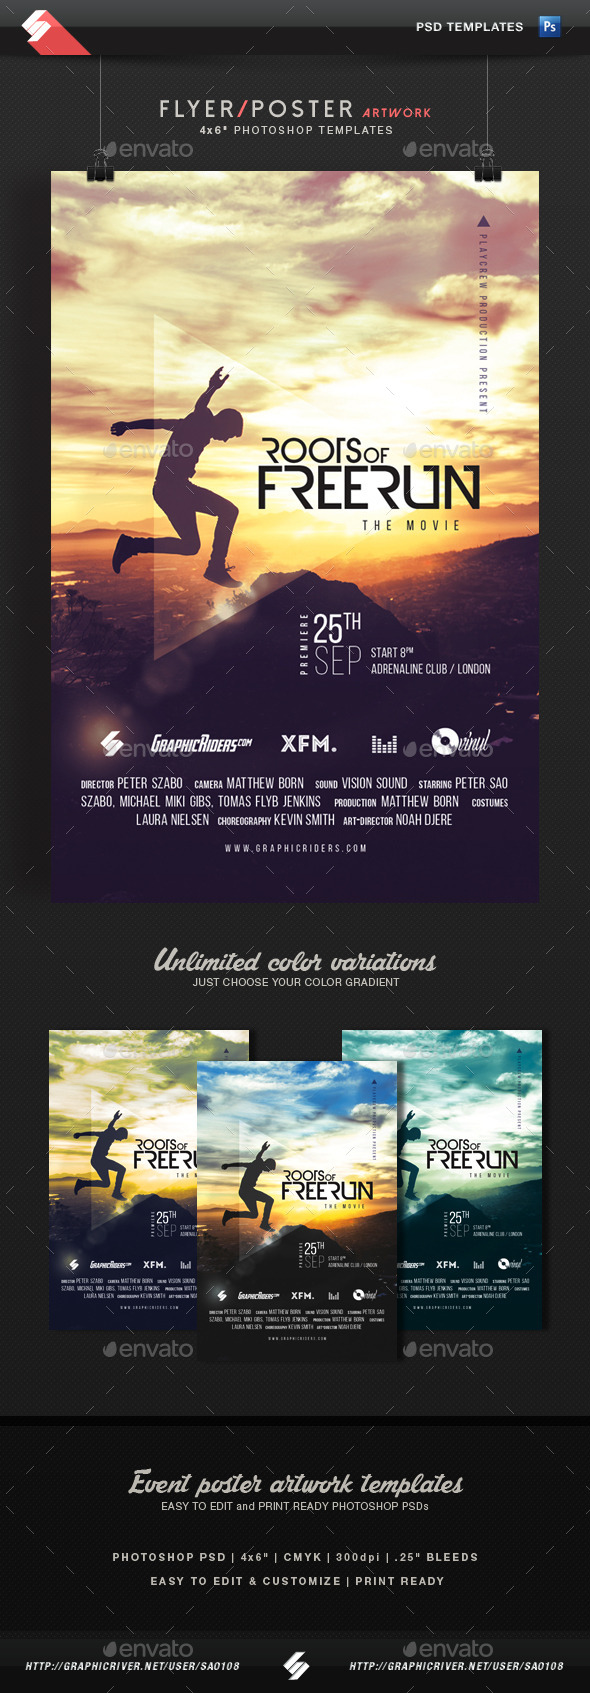 Freerun Movie - Flyer / Poster Template